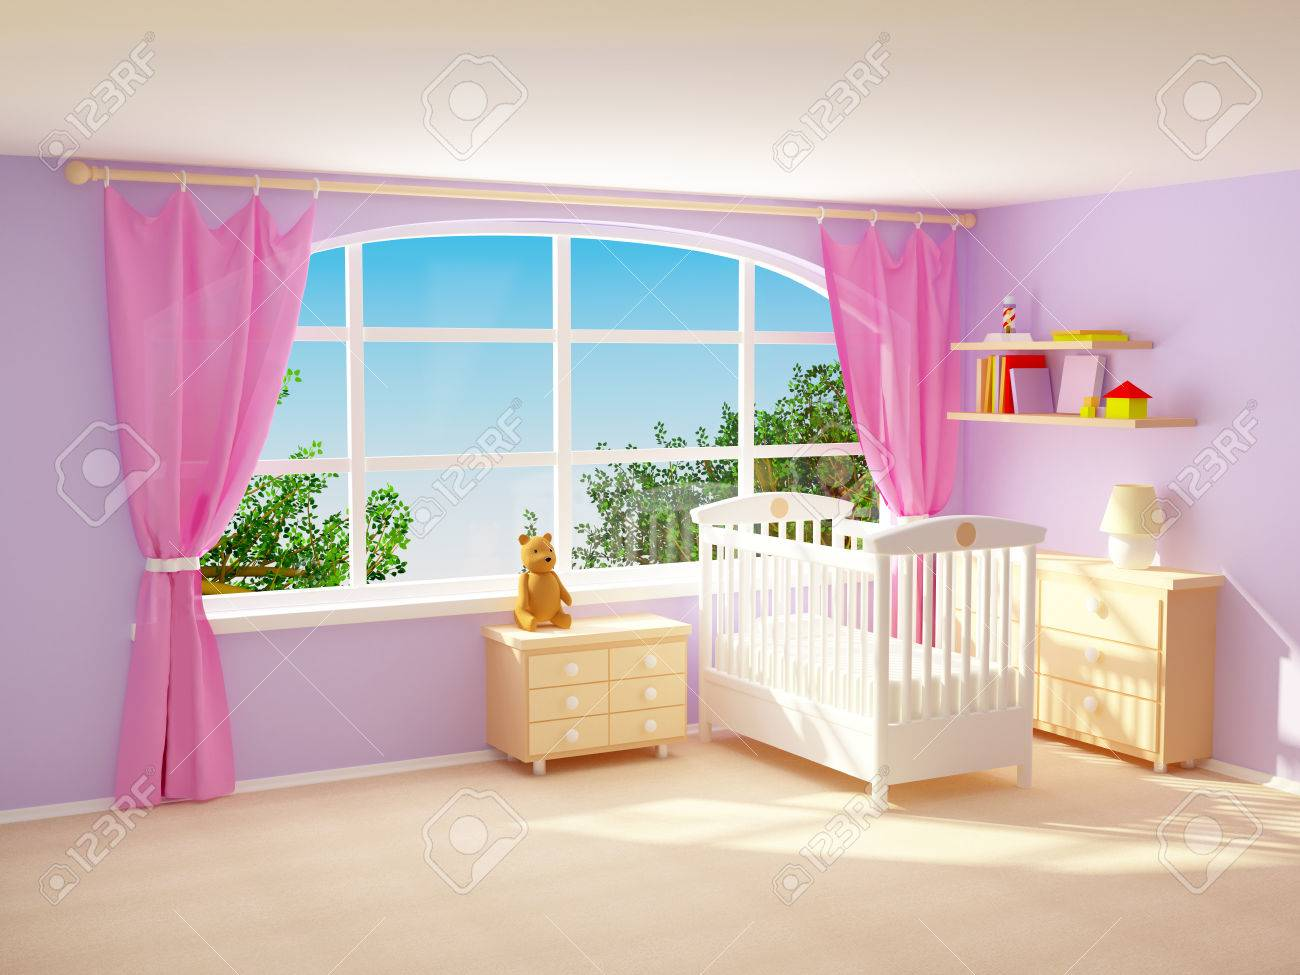 Pastel Colors Bedroom Babys Bedroom With Big Window Commode And Bear Pastel Colors